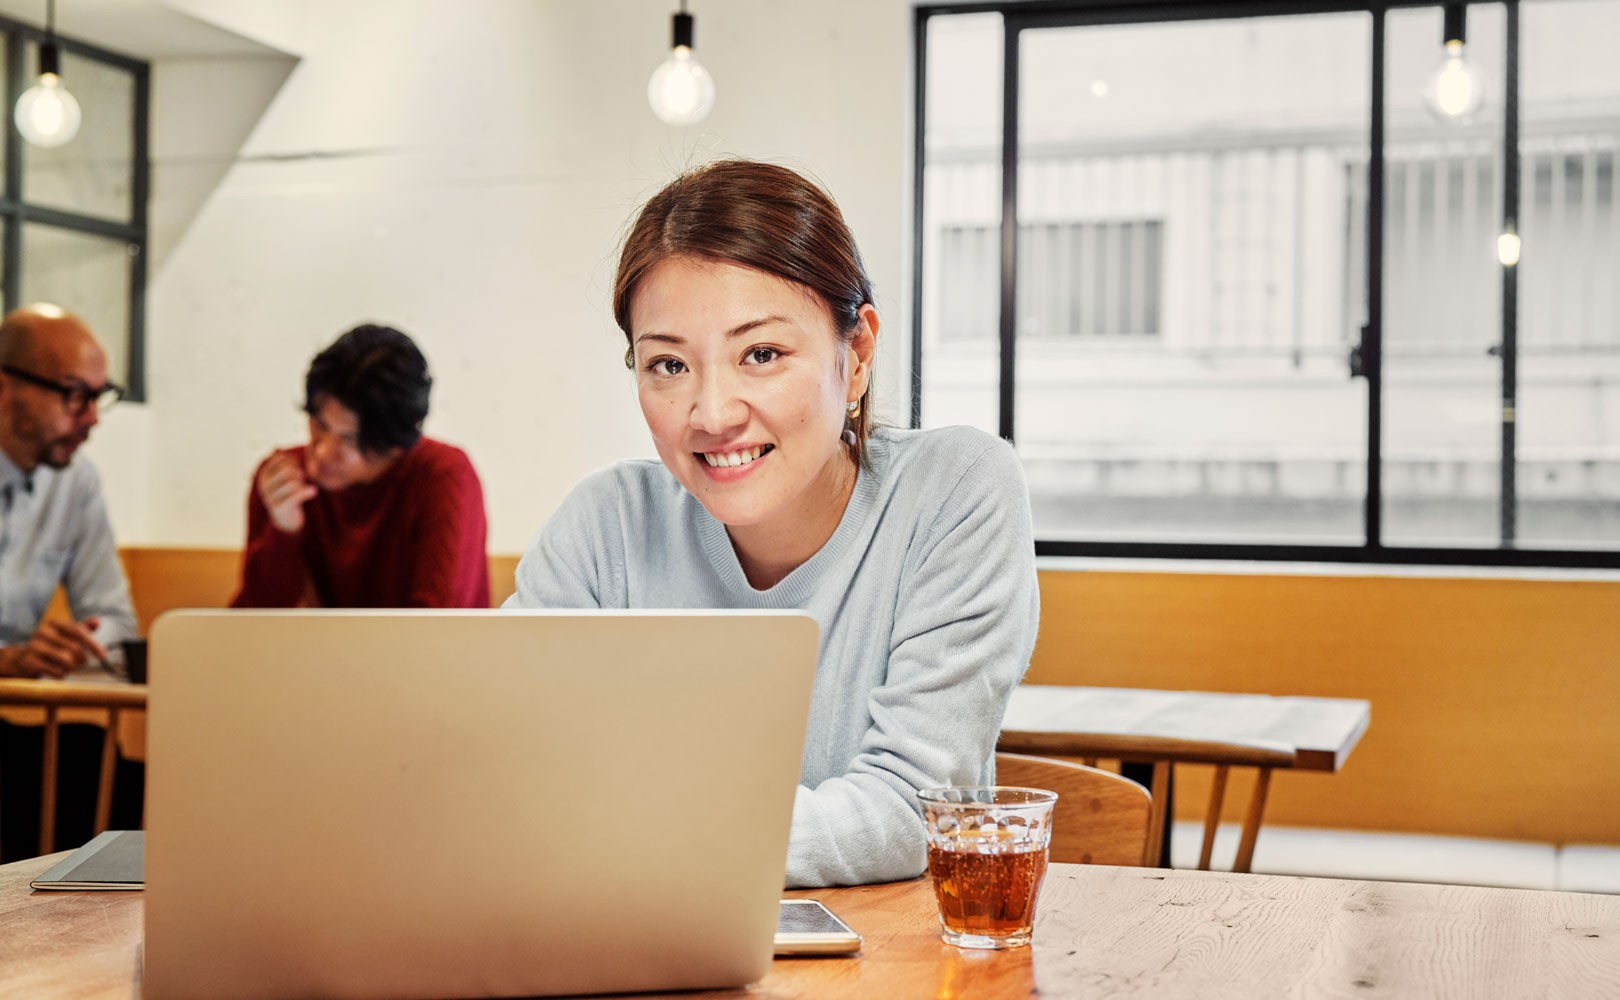 Photo of woman sitting behind laptop and smiling at camera